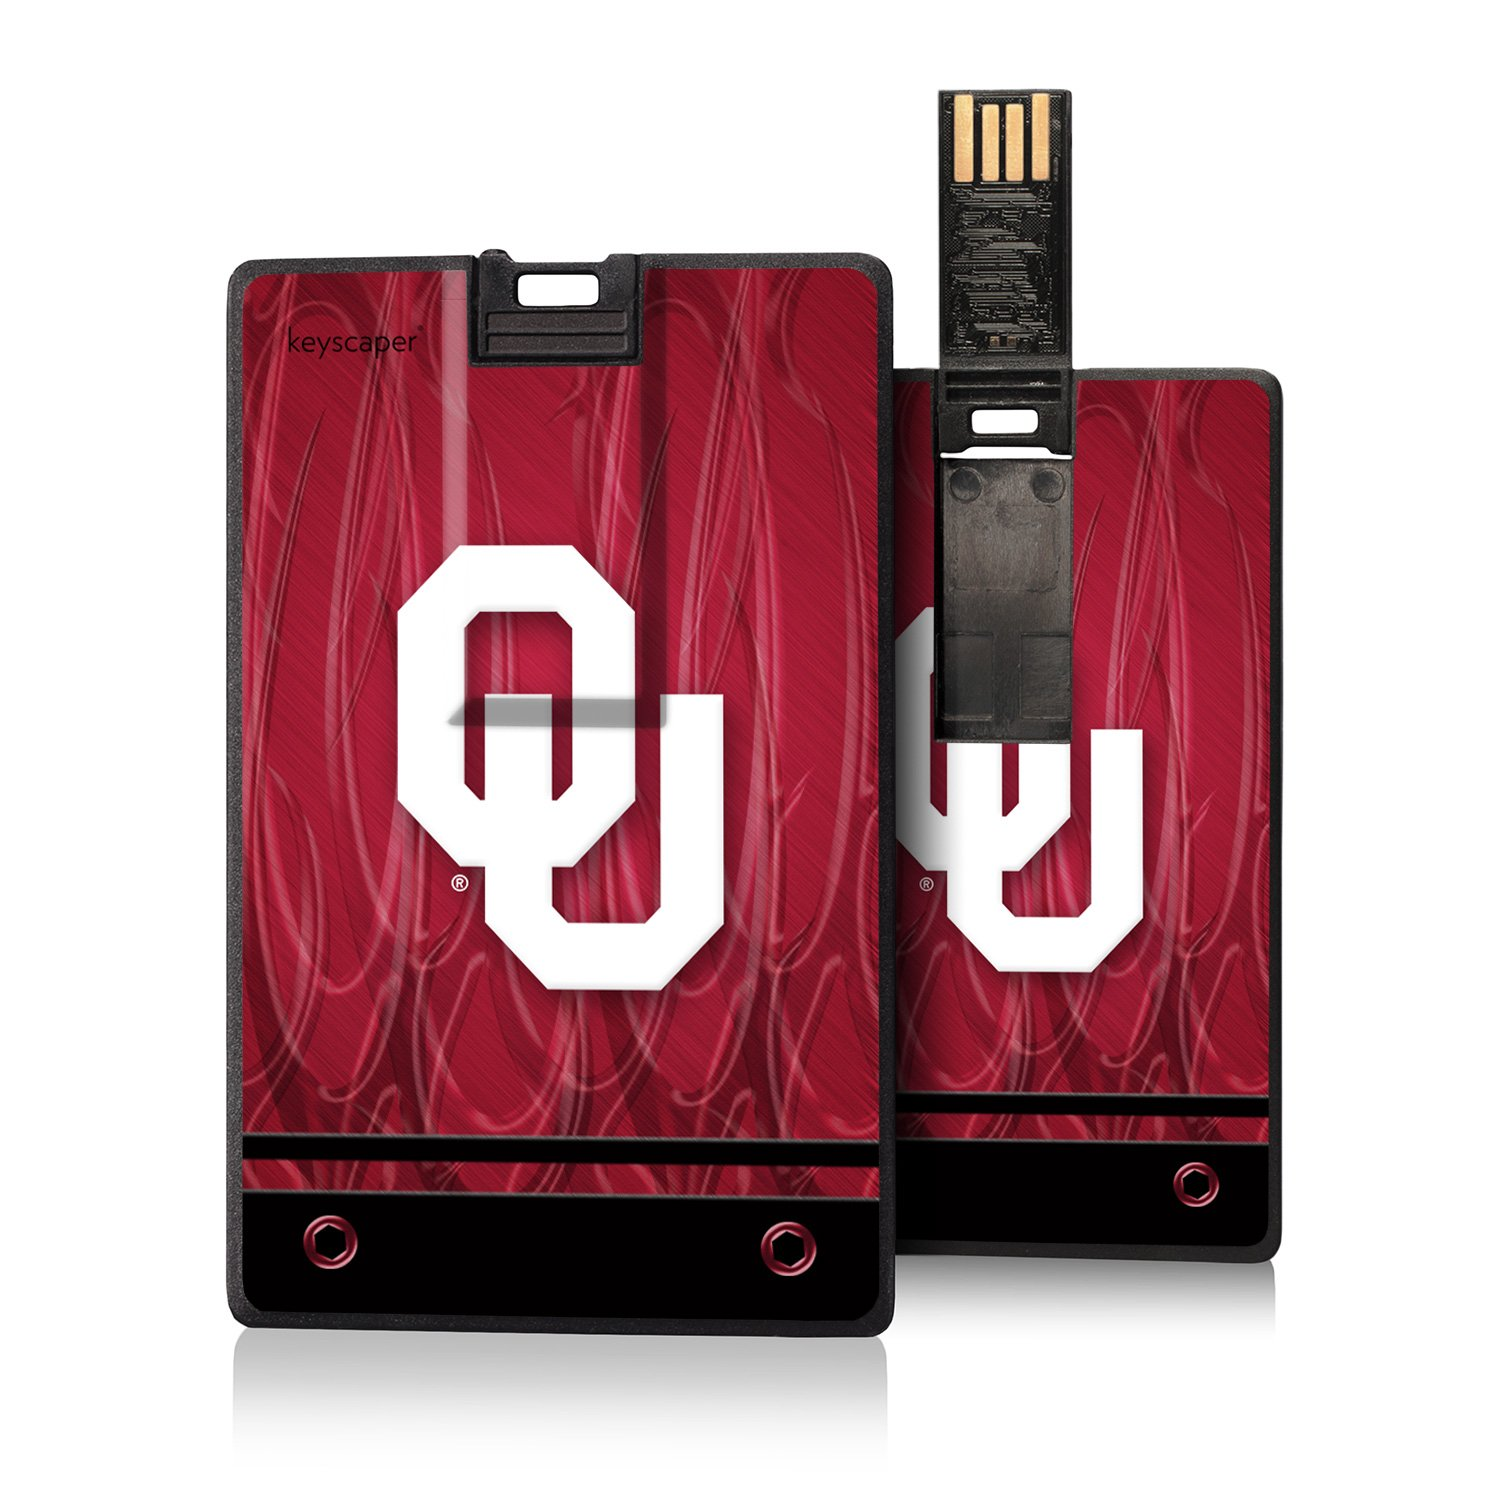 Oklahoma Sooners 8GB Credit Card Style USB Flash Drive NCAA by Keyscaper